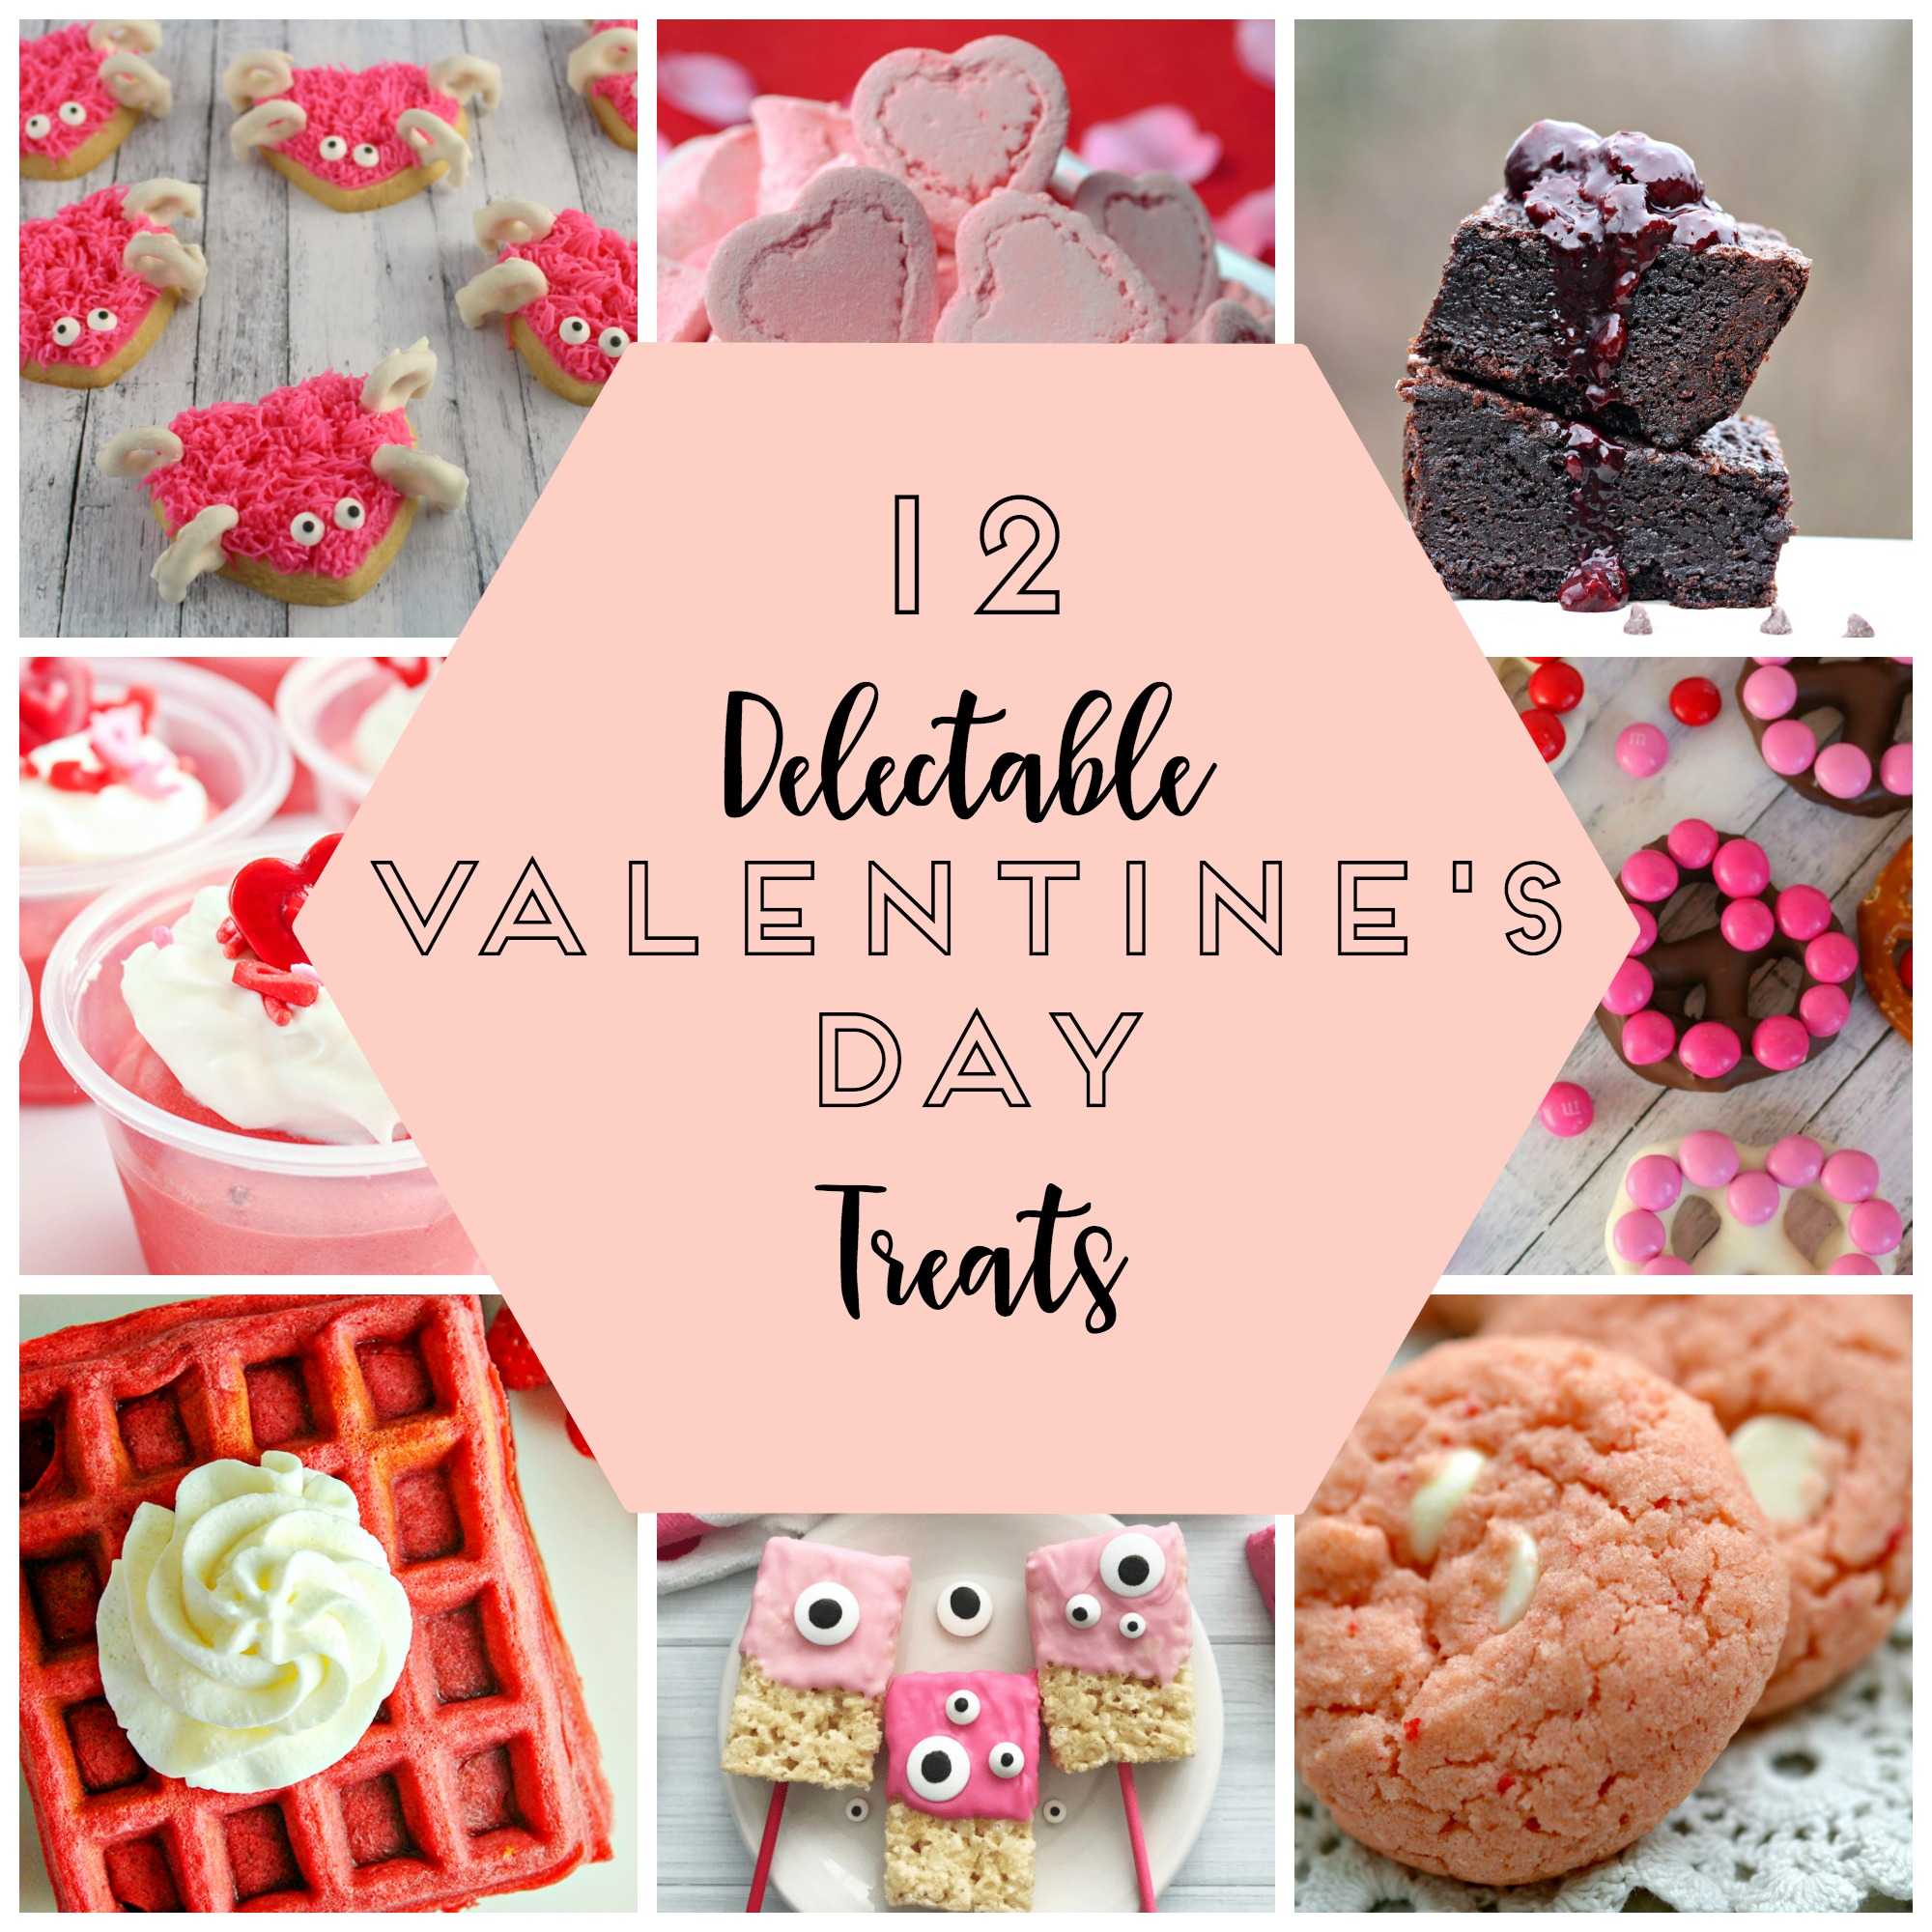 Delectable Valentine's Day Treats